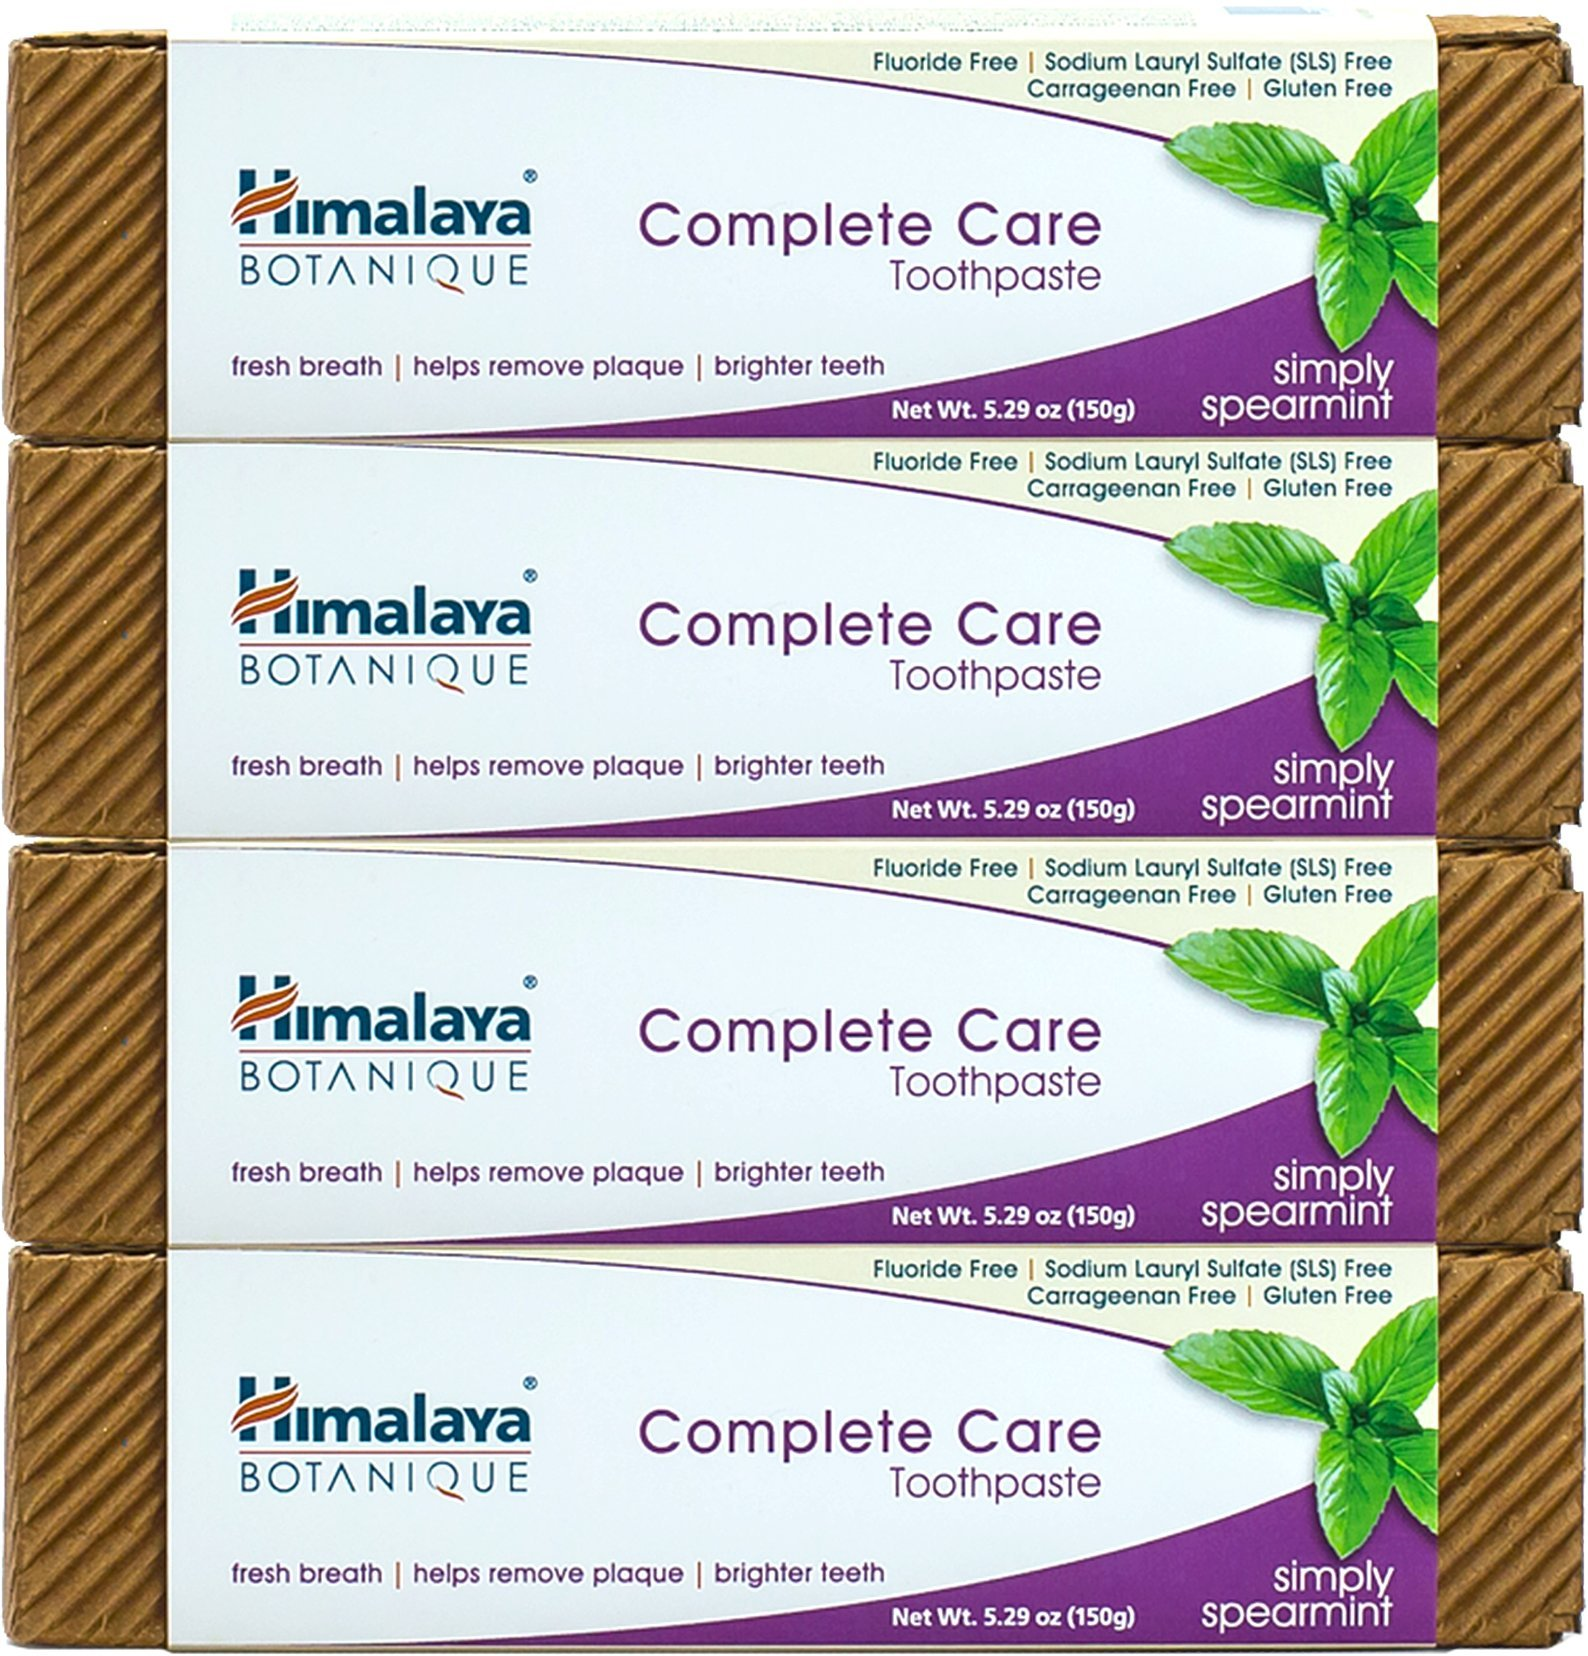 Himalaya Complete Care Toothpaste - Simply Spearmint 5.29 Oz/150 gm (4 Pack) Natural, Fluoride-Free & SLS Free